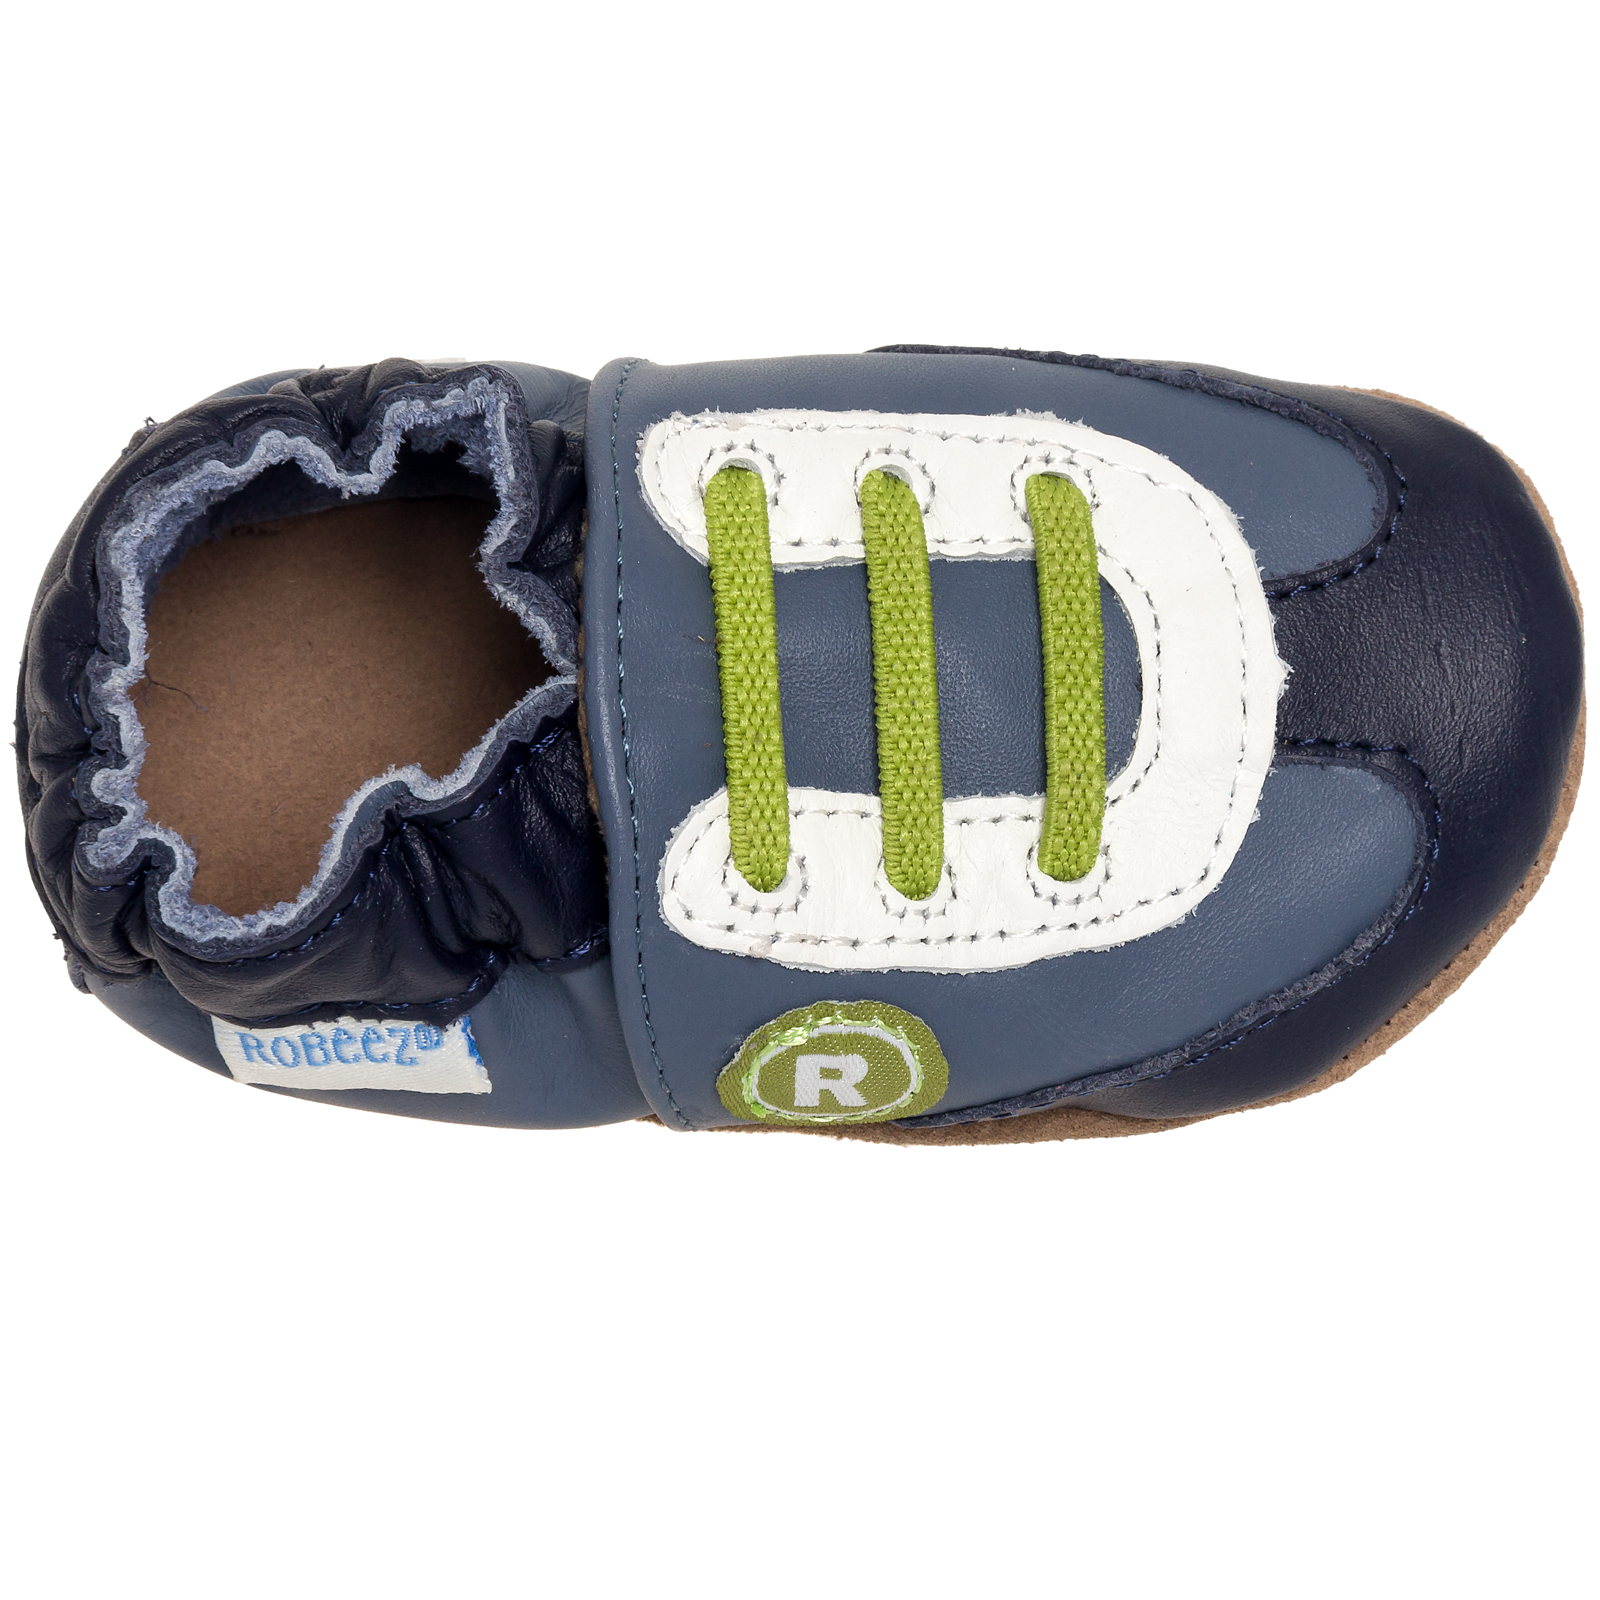 ROBEEZ NEW All Star Rodney Non Slip Infant Baby Toddler